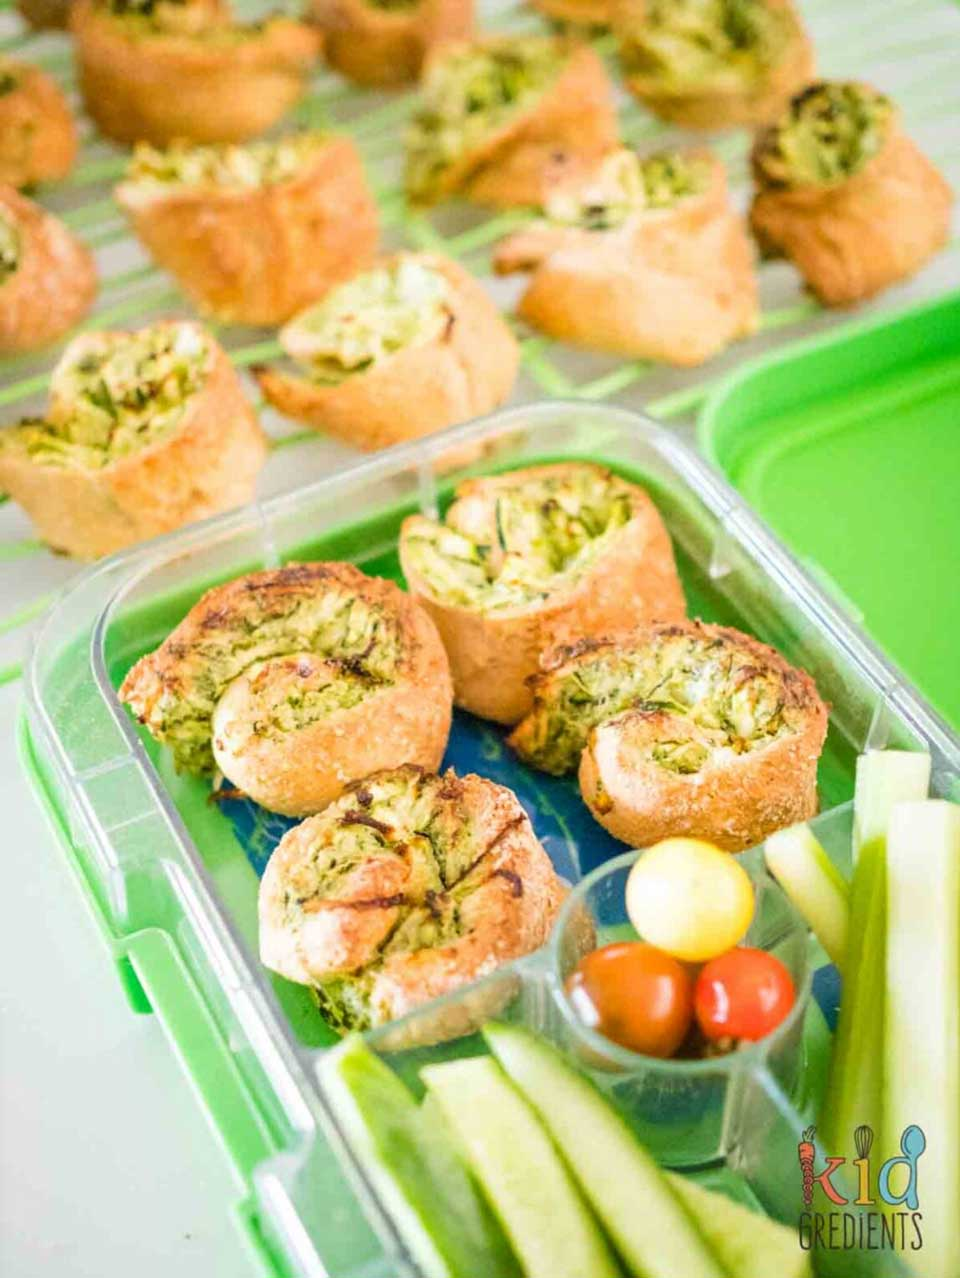 Four in a lunchbox, along with veggie sticks, with additional pinwheels on a cooling rack in background.